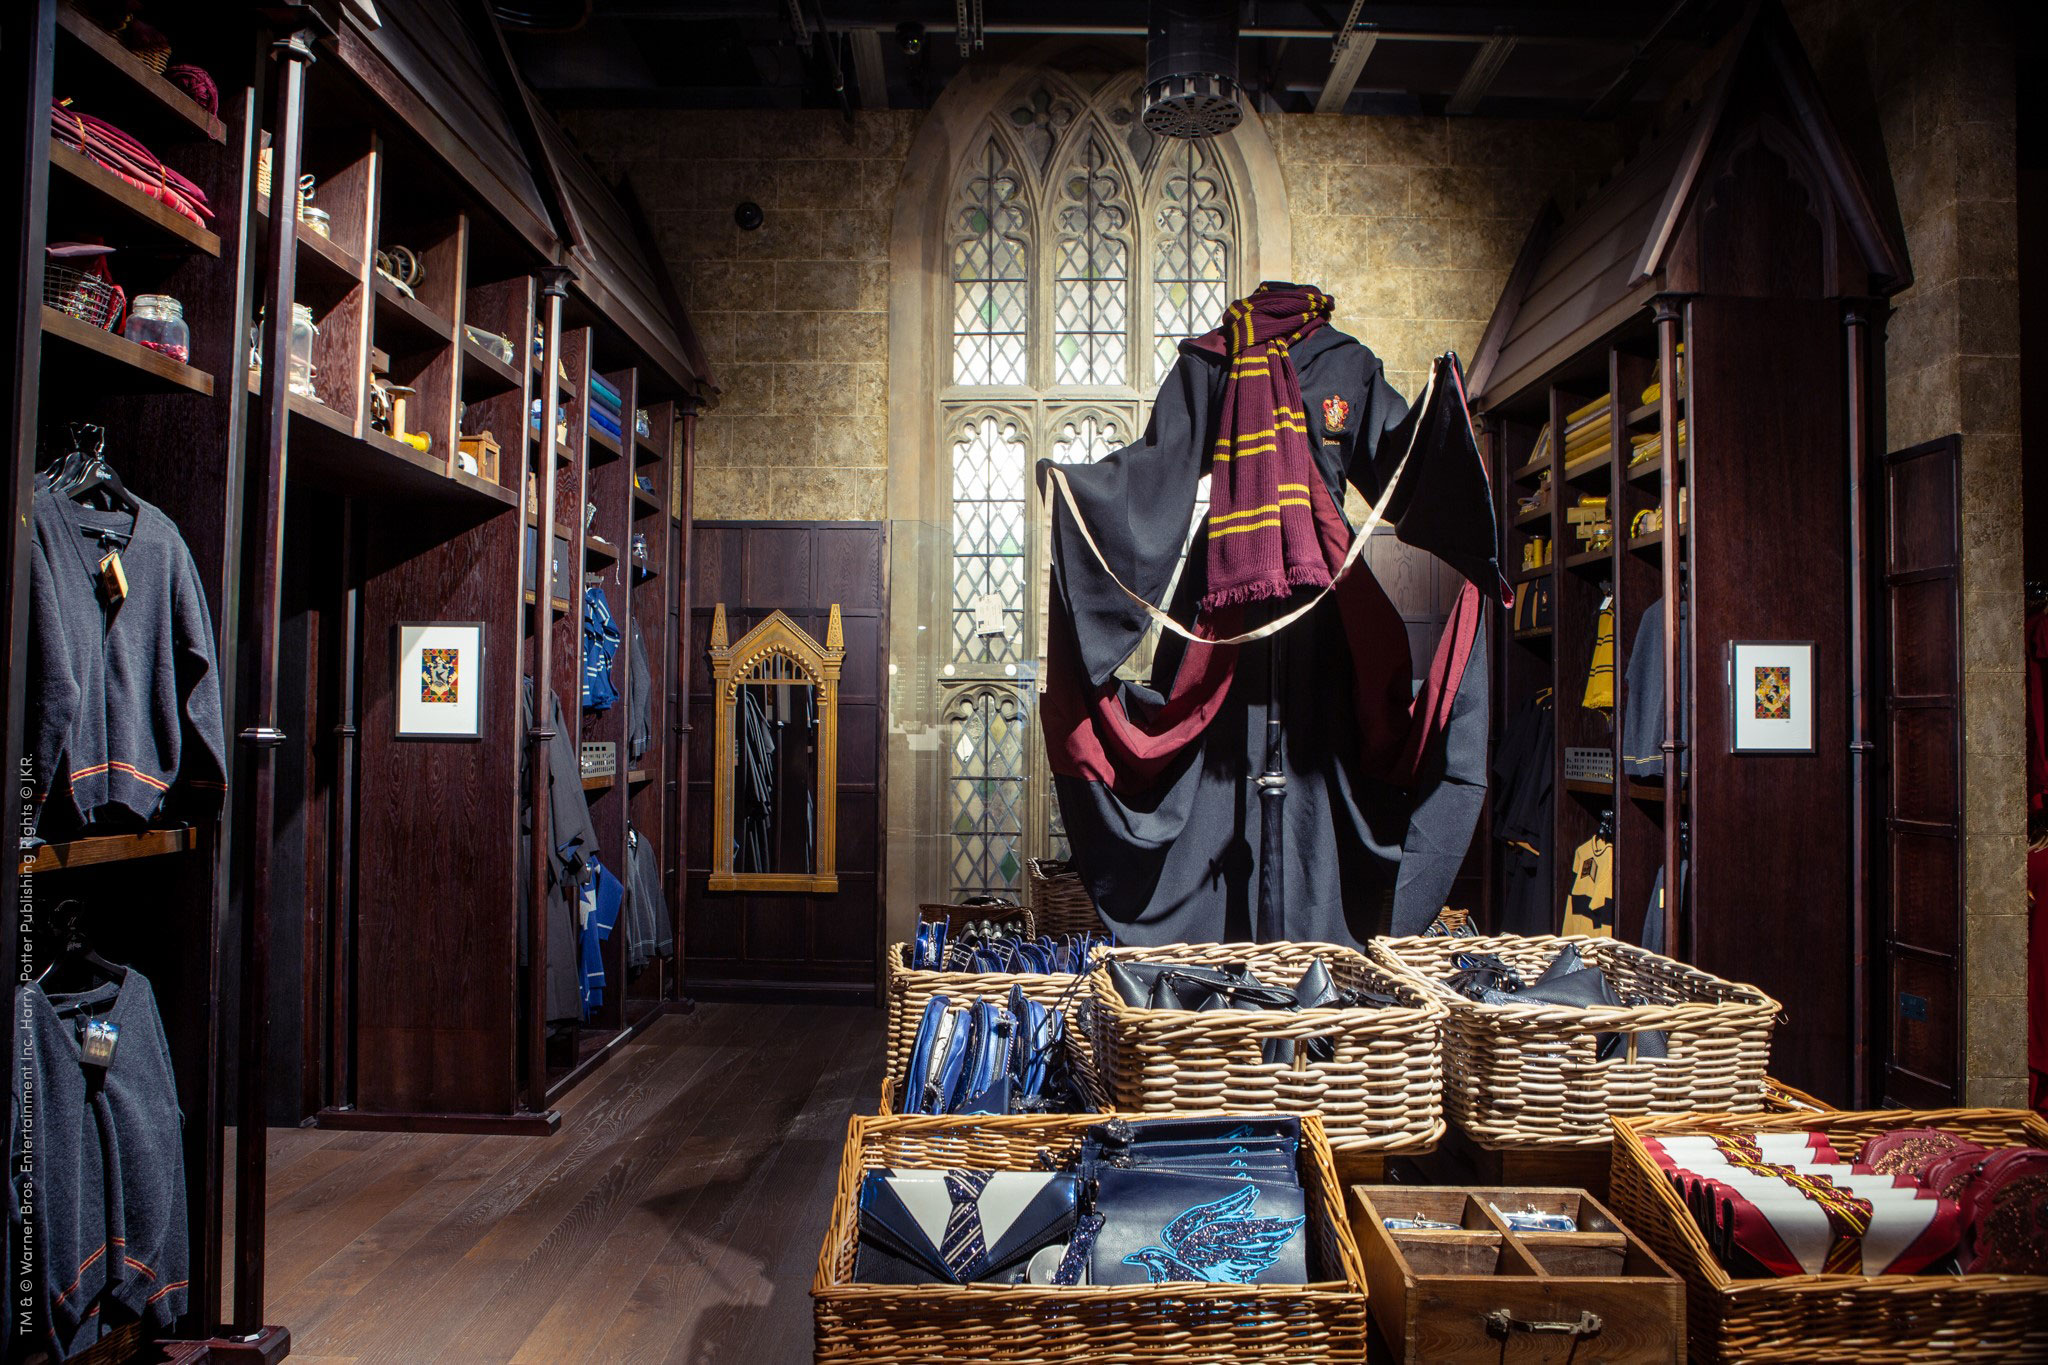 Members will have access to discounts at the Warner Bros. Studio Tour's gift shop.